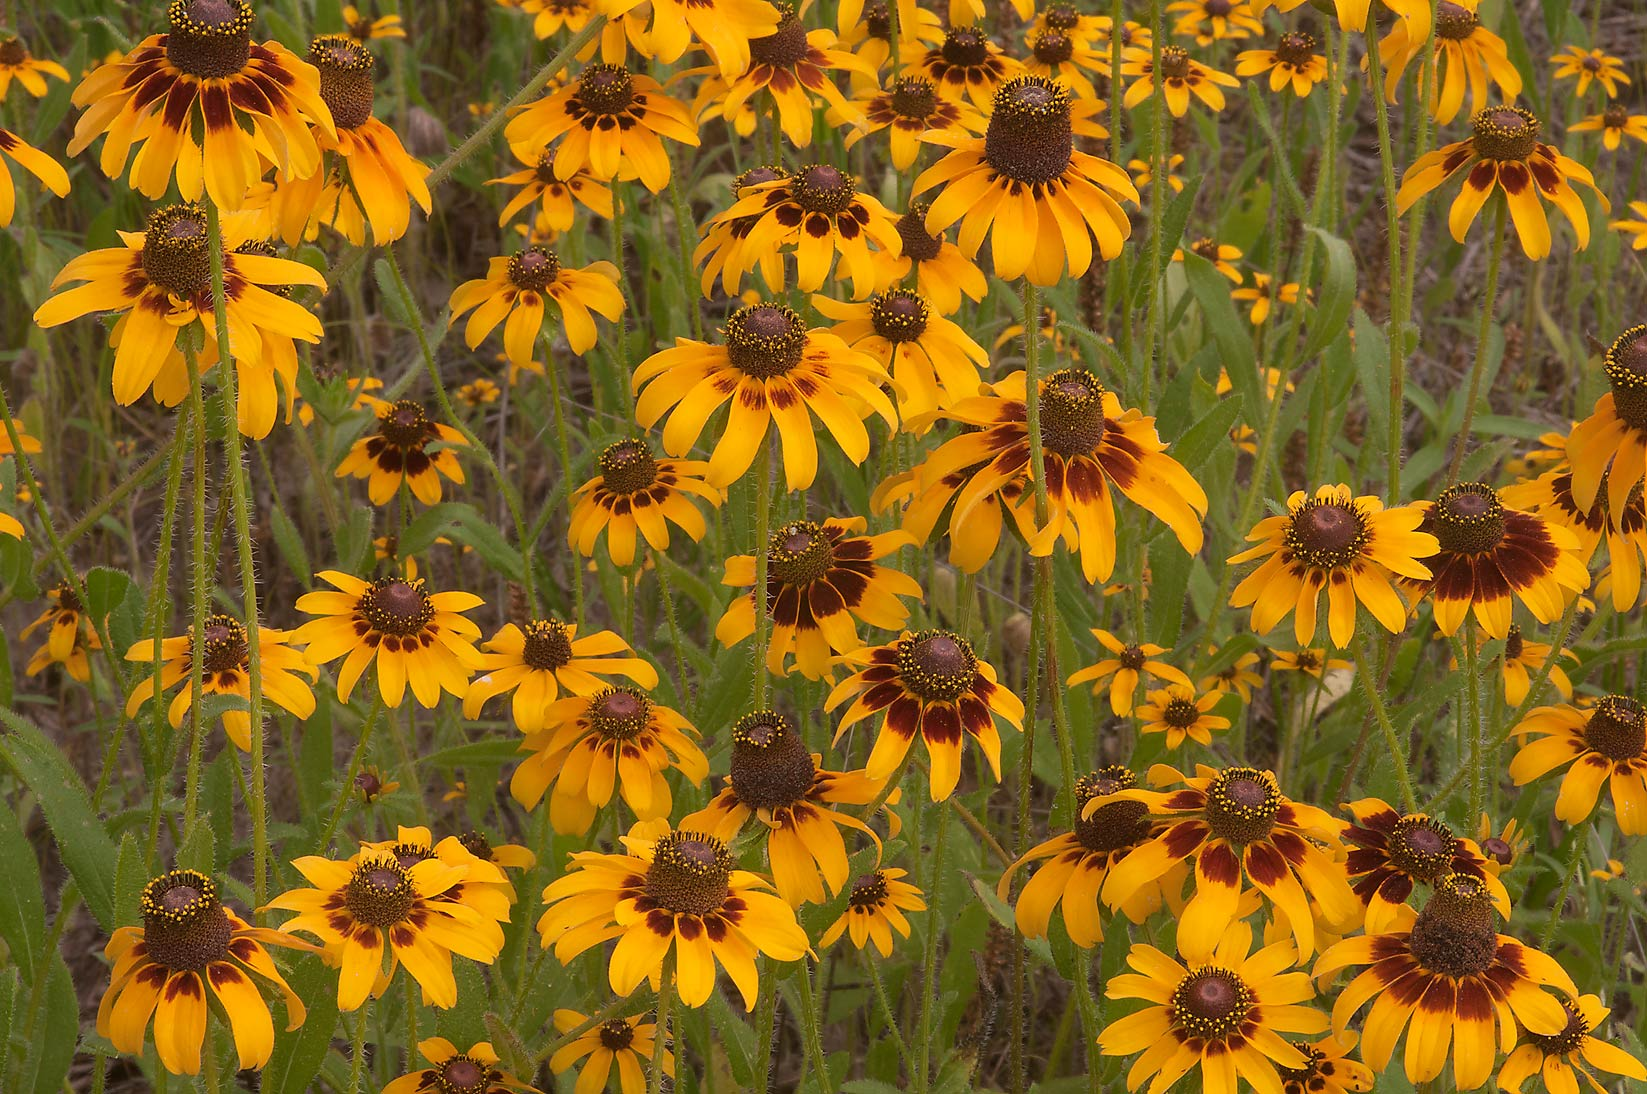 Yellow flowers of Black eyed susan at equestrian...Creek Park. College Station, Texas